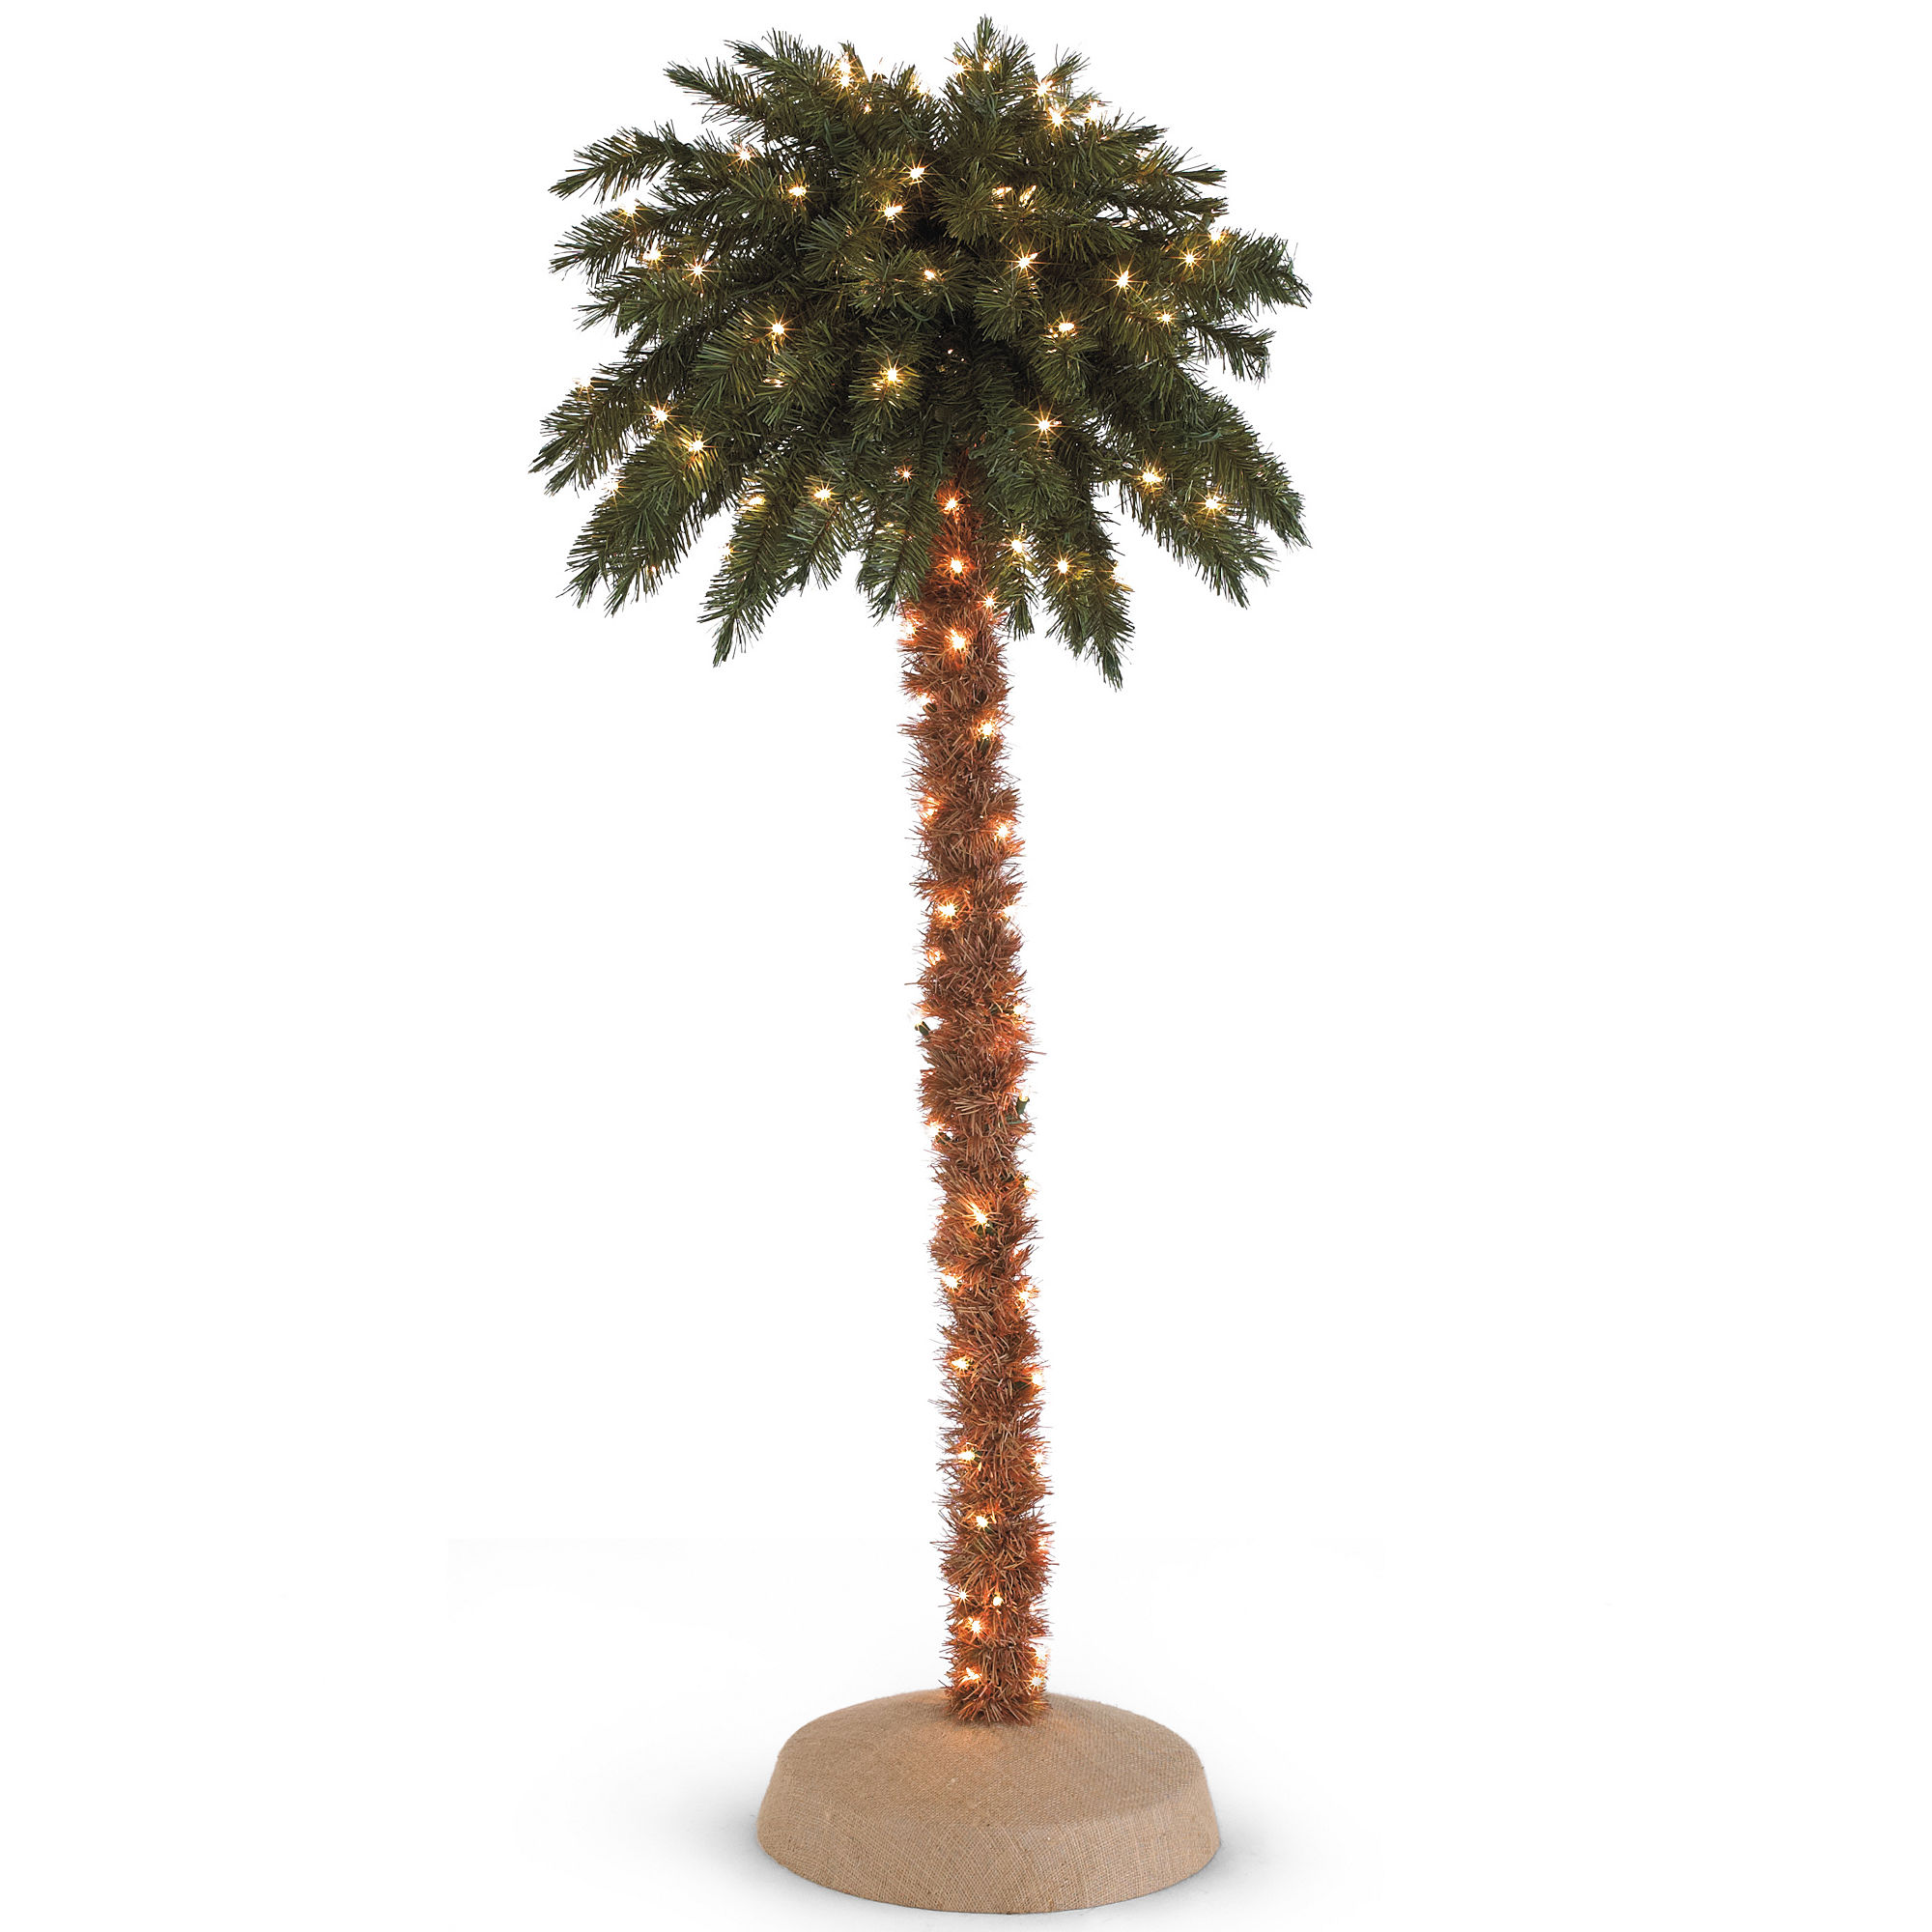 Christmas palm trees buy christmas palm tree online for Purchase trees